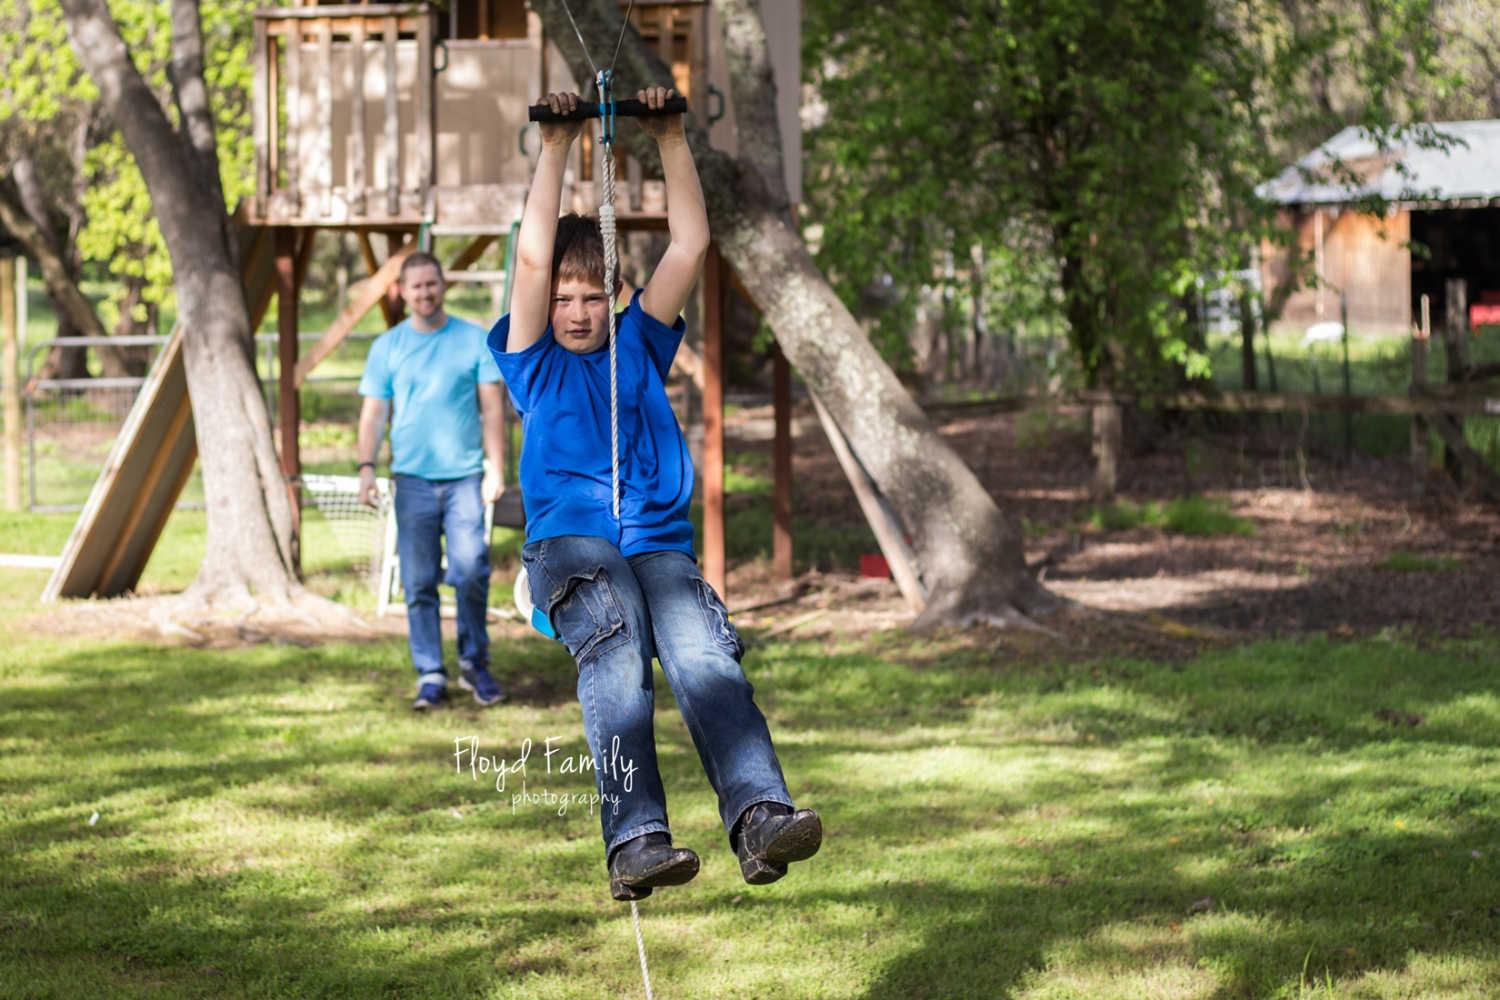 Boys swinging on the zip line in their back yard